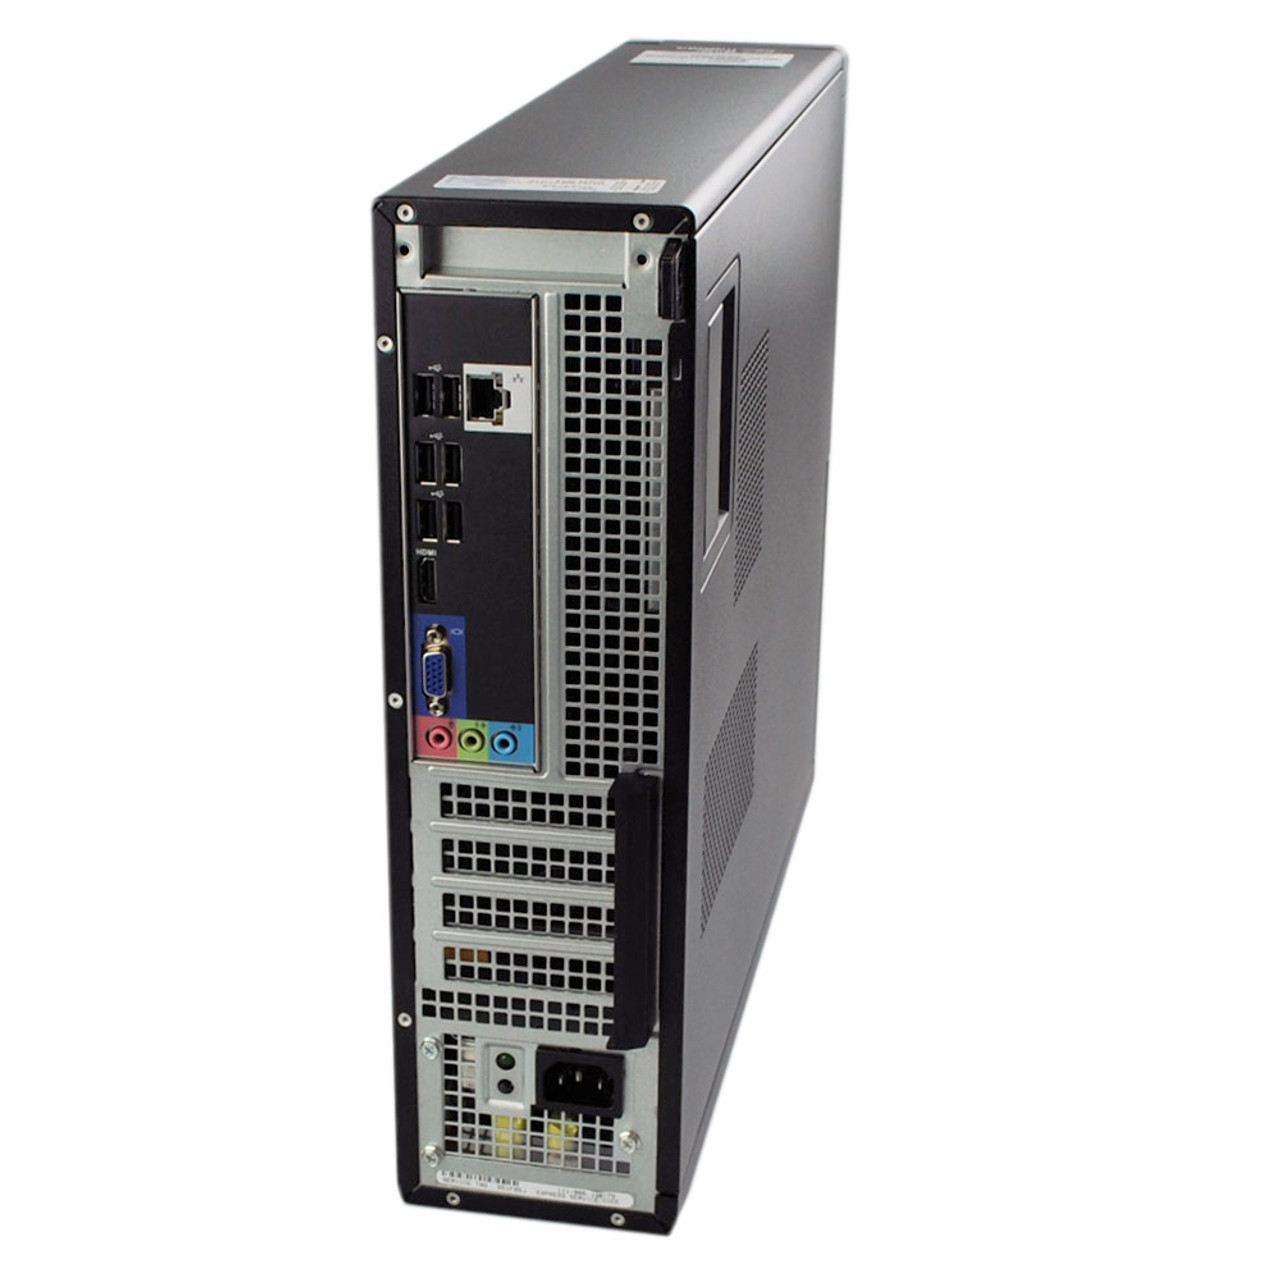 Dell Optiplex 390 SD Core i3 3.1GHz, 4GB Ram, 250GB HDD, DVD-RW, Windows 7 Pro 64 Desktop Computer